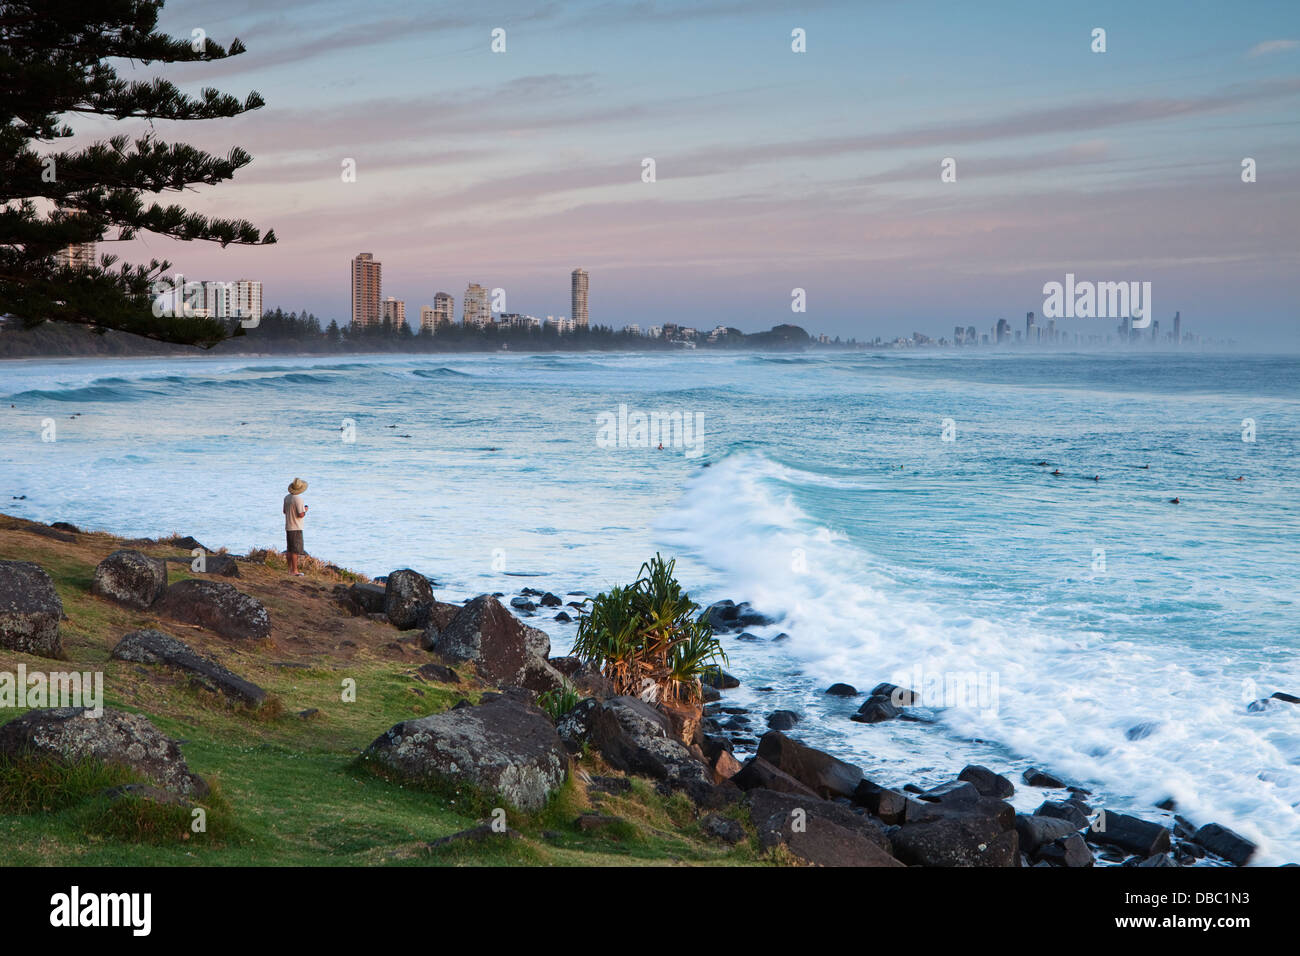 Man watching surfers at Burley Heads, at dawn. Gold Coast, Queensland, Australia - Stock Image